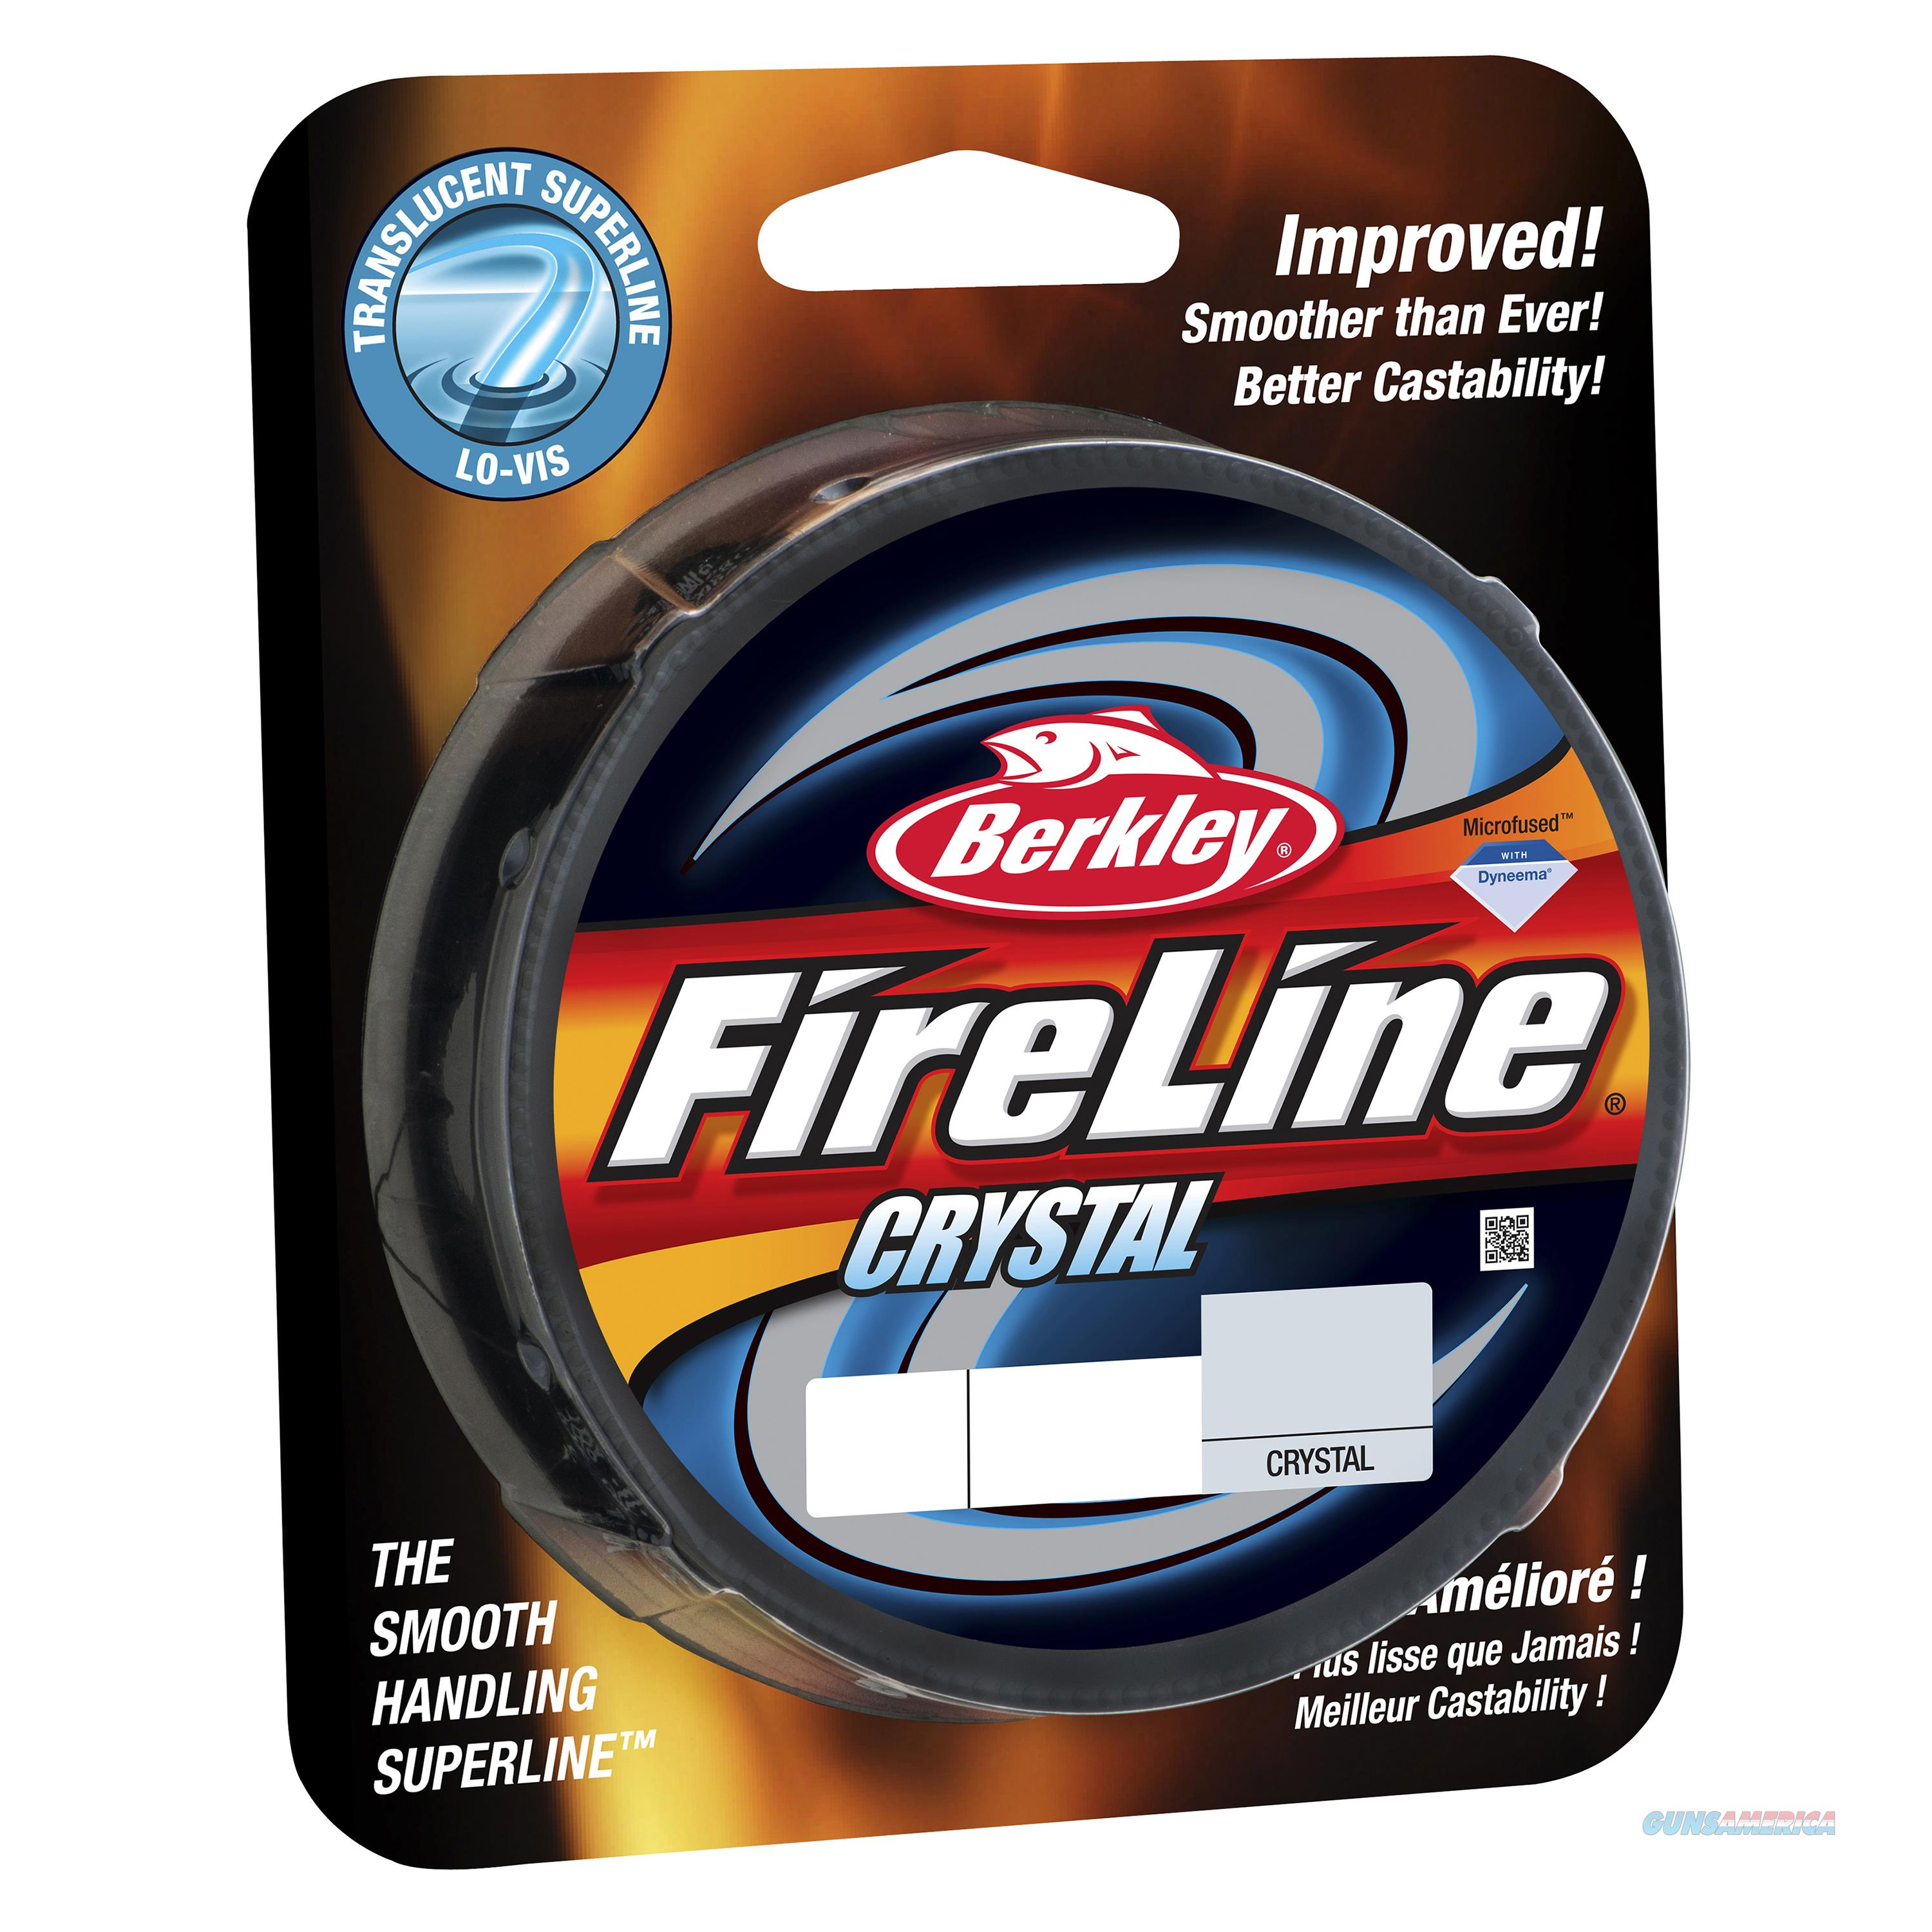 Berkley Fishing Products Fireline Fused  Superline Crystal Line Spool FL150010-CY  Non-Guns > Fishing/Spearfishing